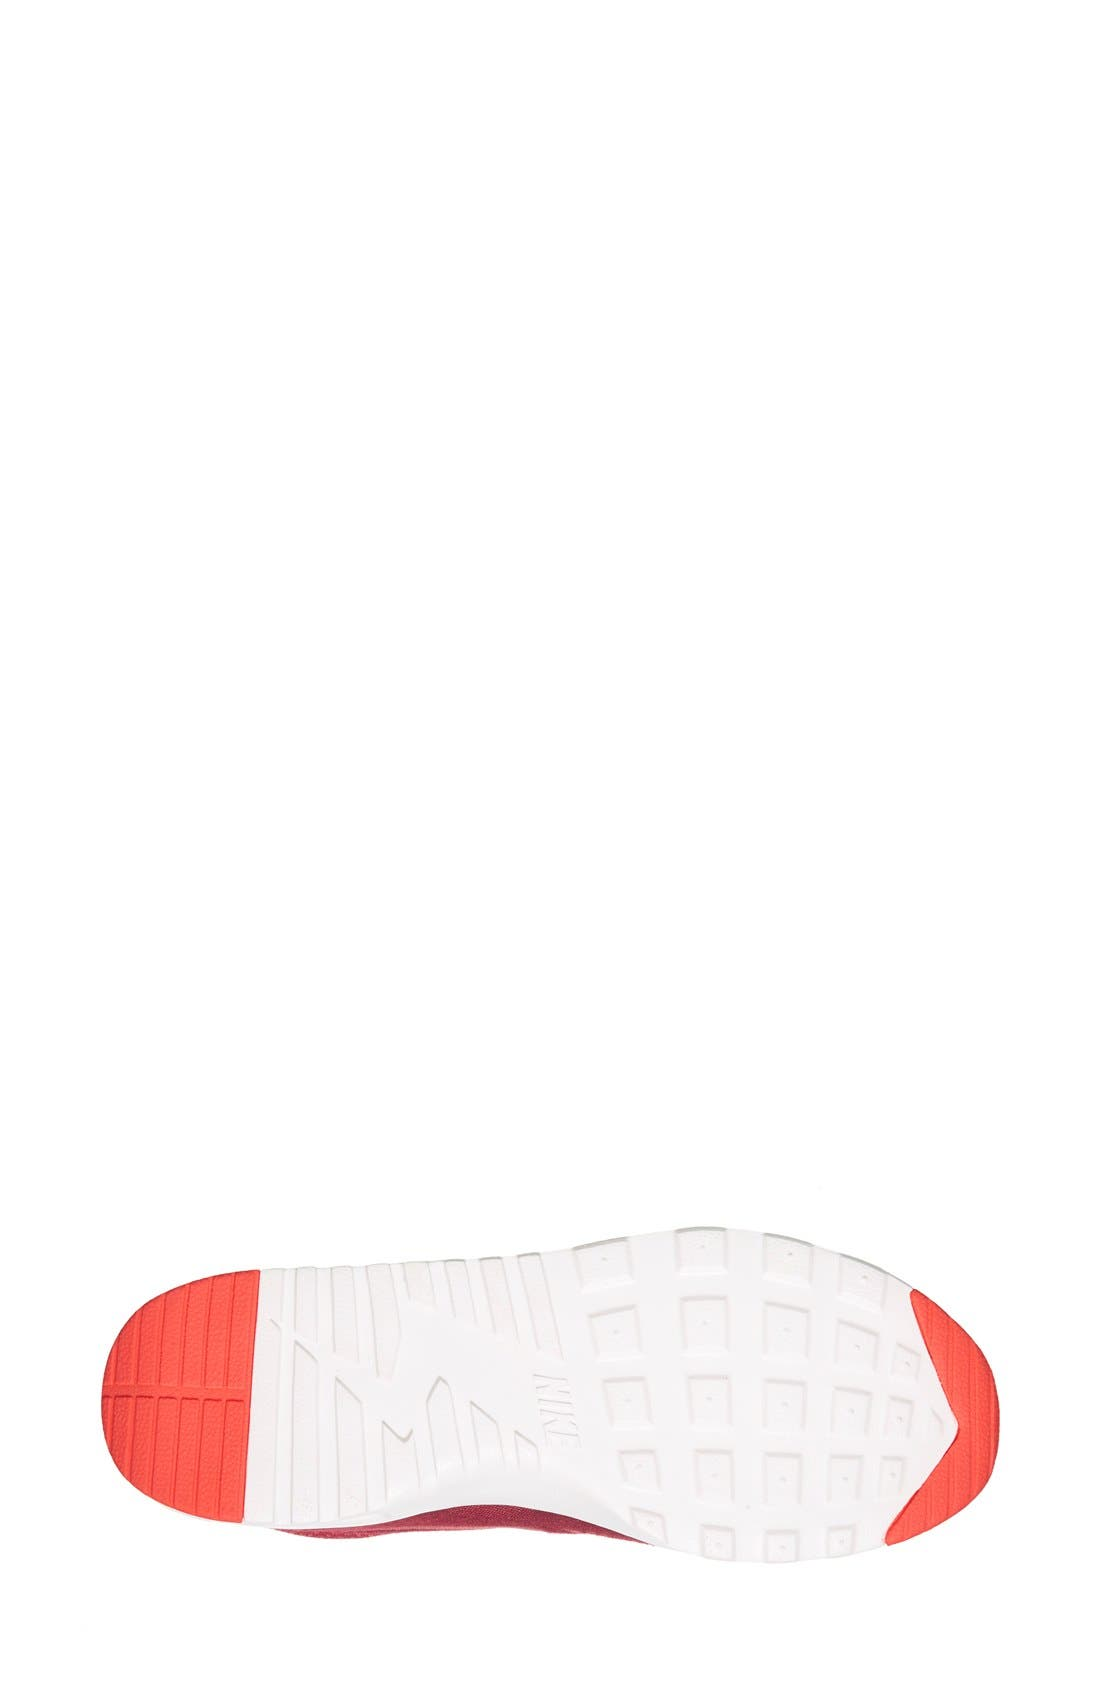 Alternate Image 3  - Nike 'Air Max Thea' Jacquard Sneaker (Women)